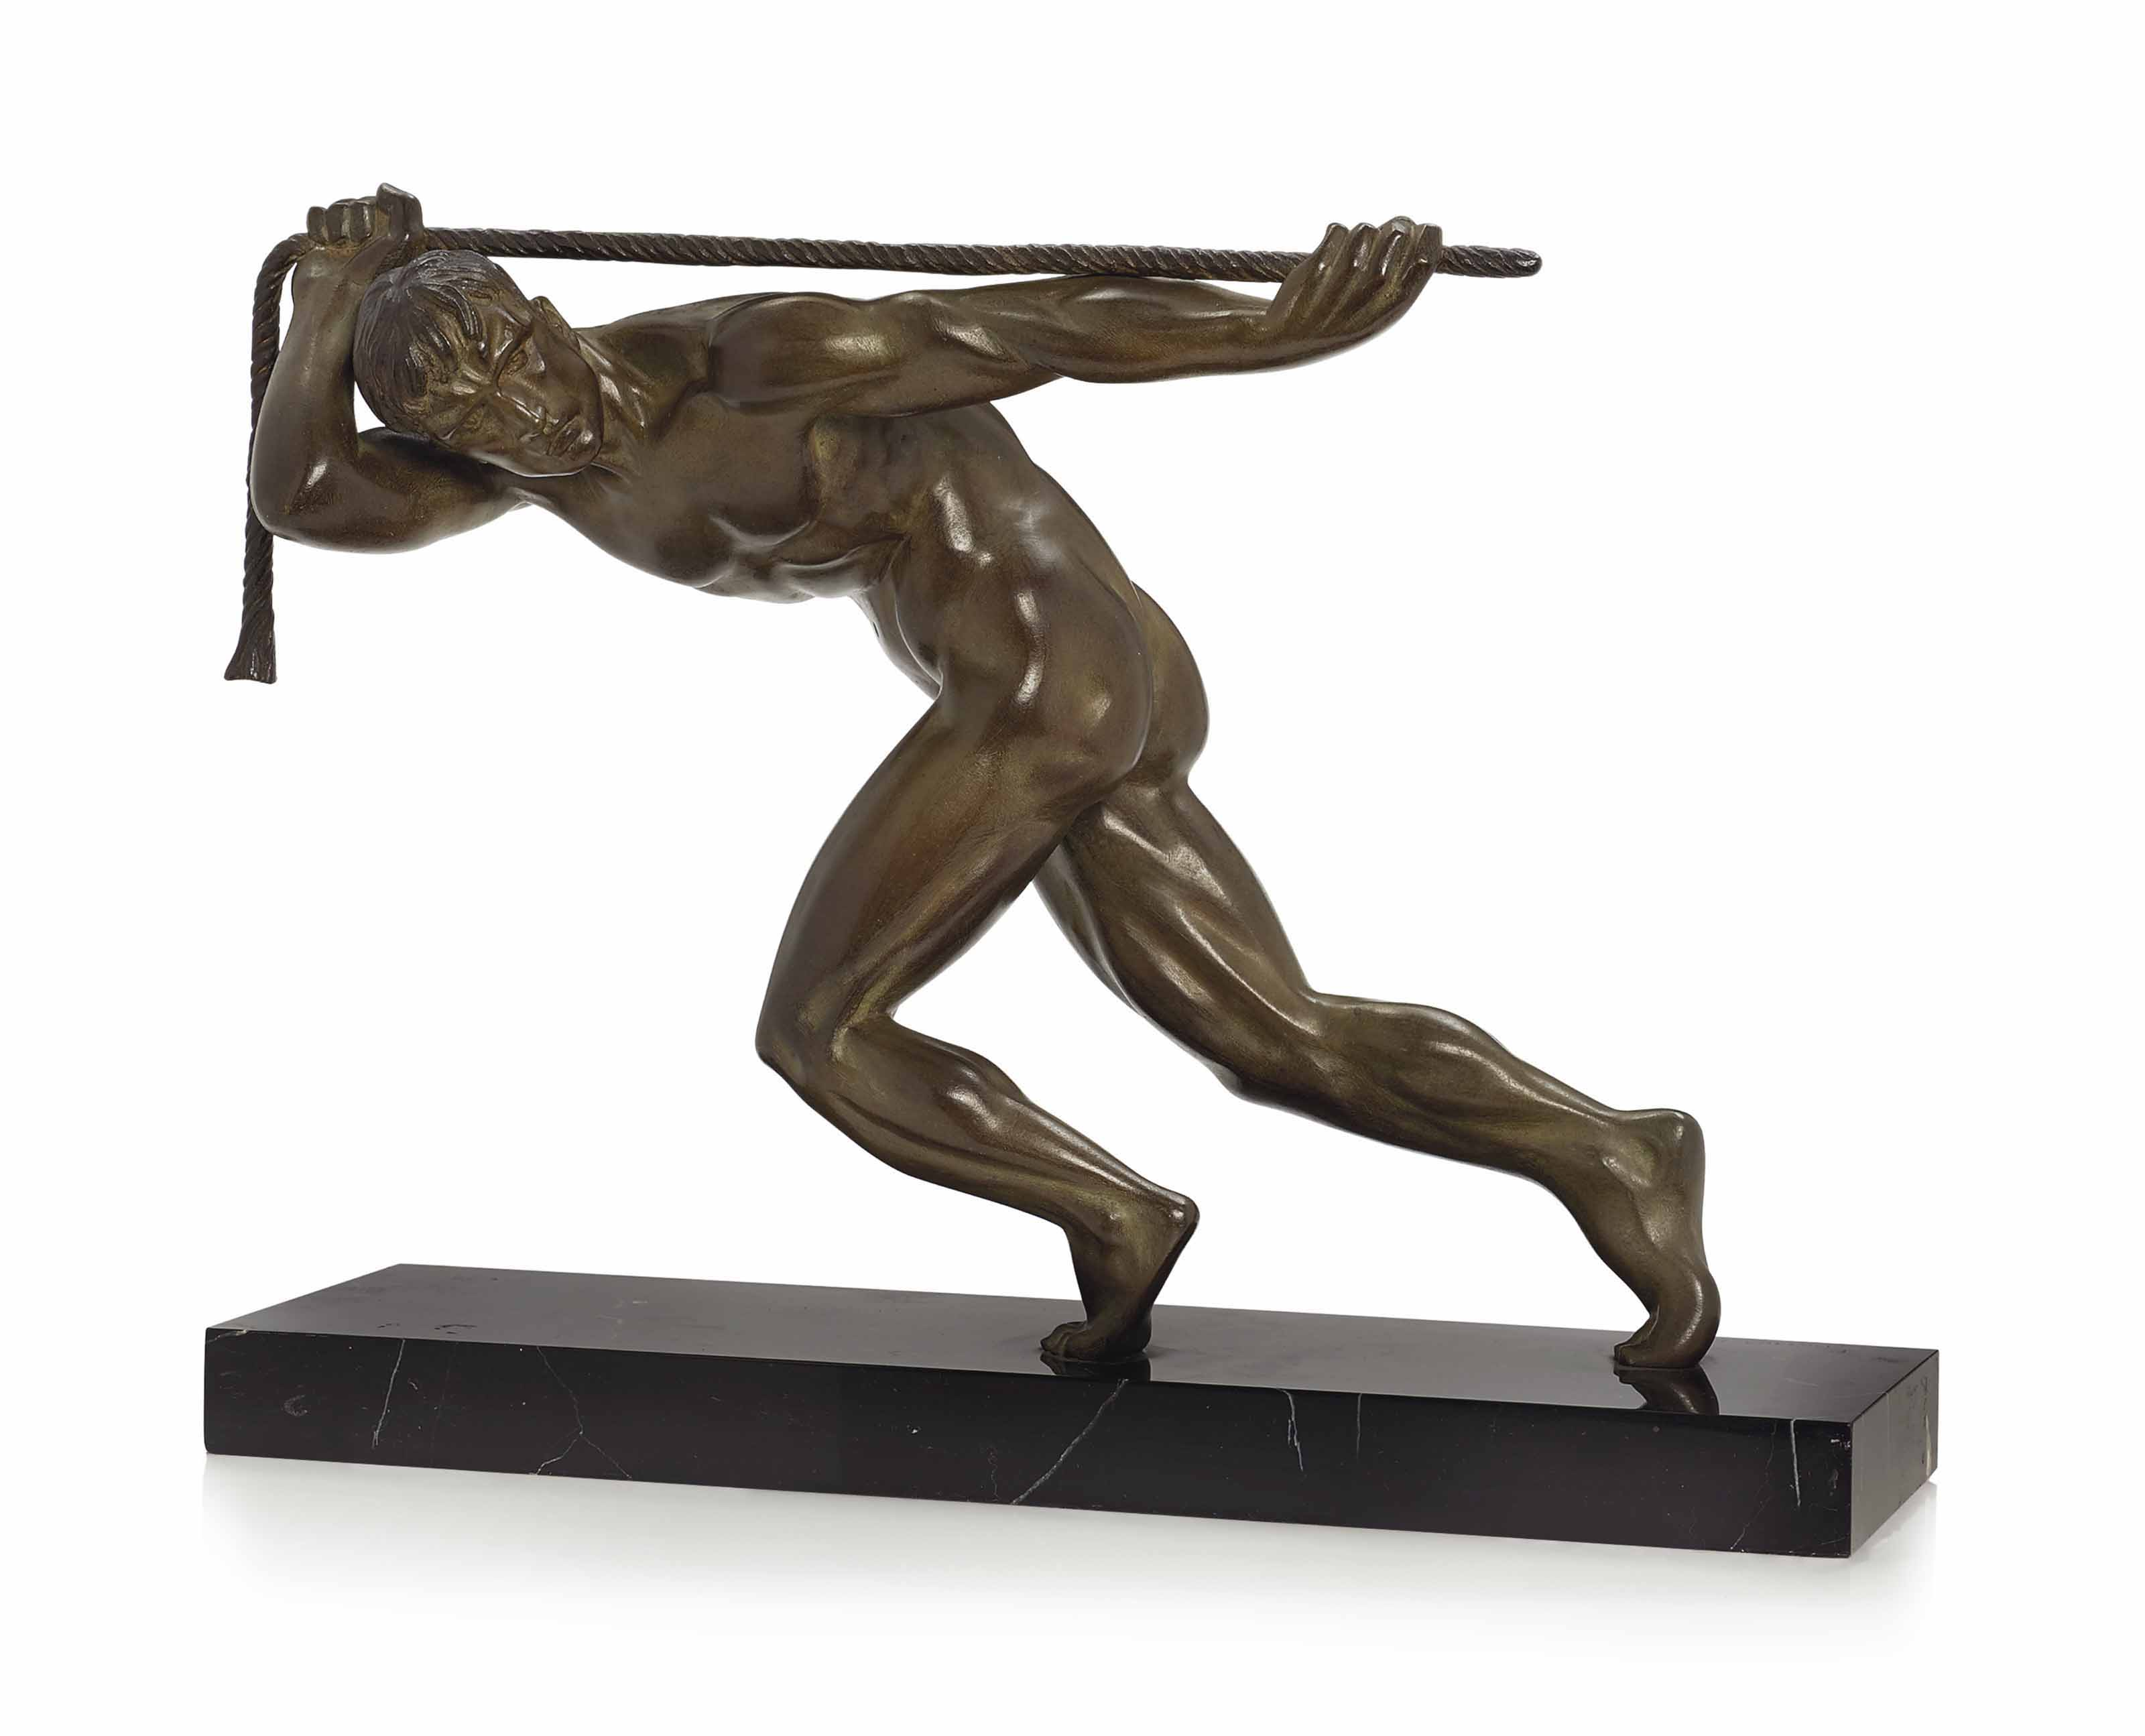 A MAURICE GUIRAUD-RIVIERE (1881-1947) COLD-PAINTED BRONZE ON A MARBLE PLINTH